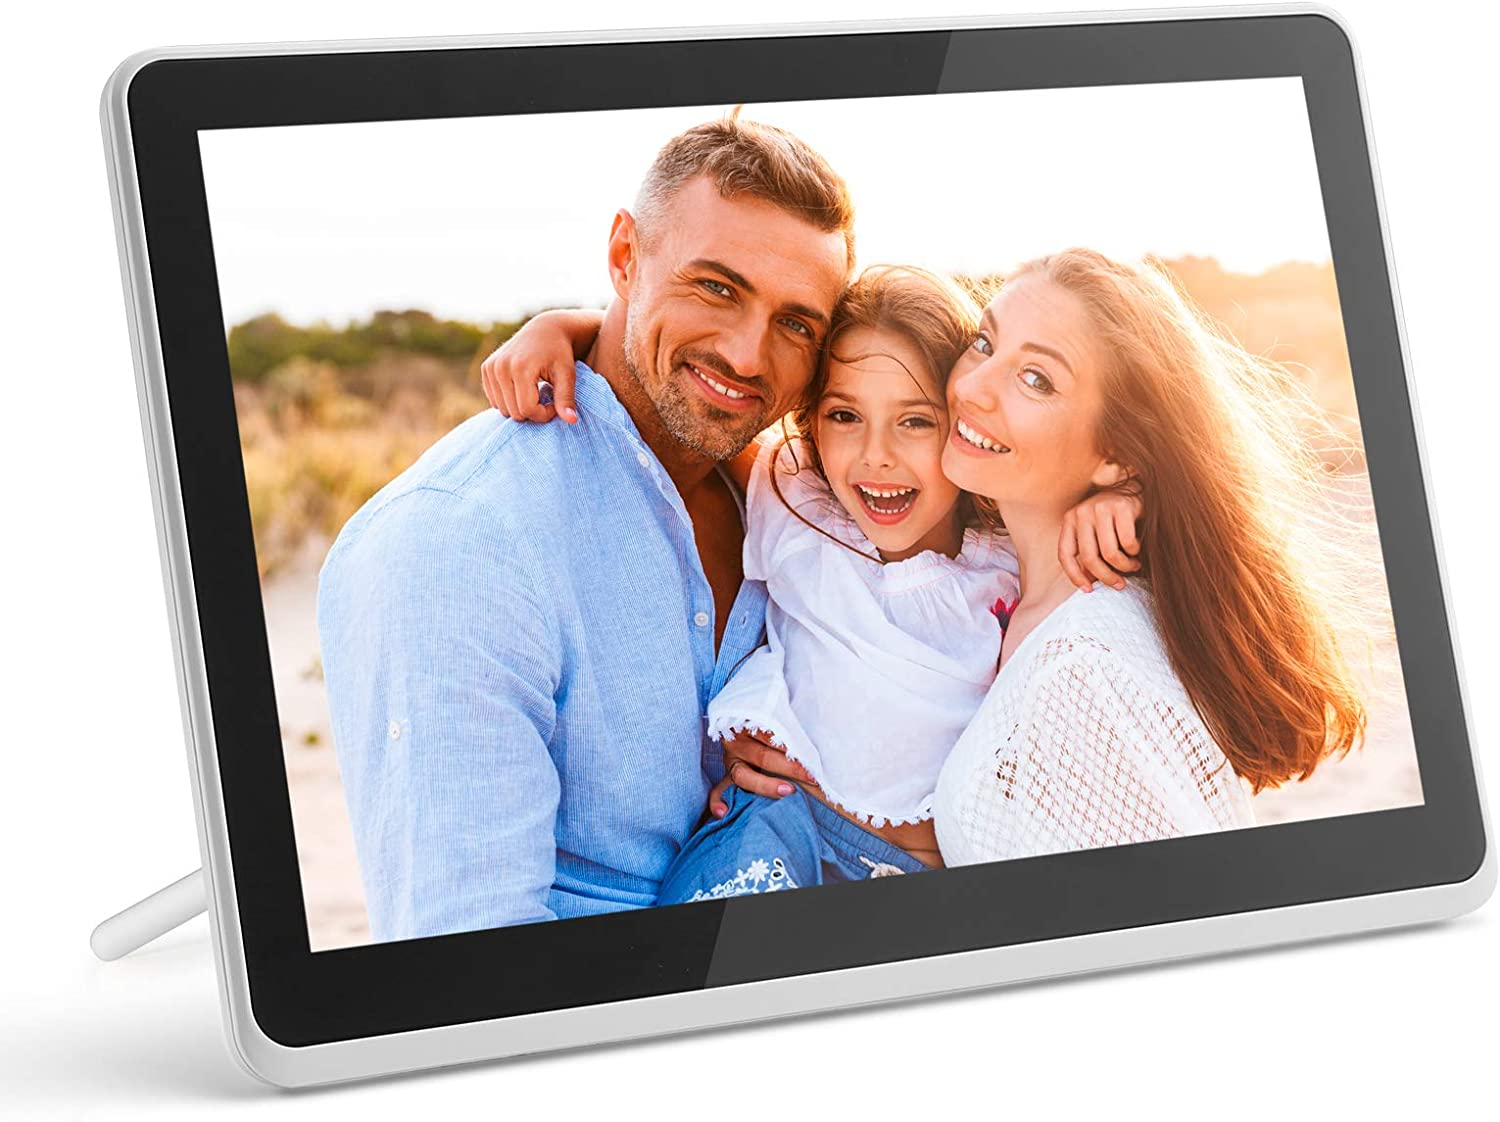 Digital Photo Frame WiFi Digital Picture Frame kimire 1920x1080 Touch Screen, Support Thumb USB Drive and SD Slot, Music Player, Alarm Clock, Share Photo and Video via APP, Cloud, Email(10inch White)